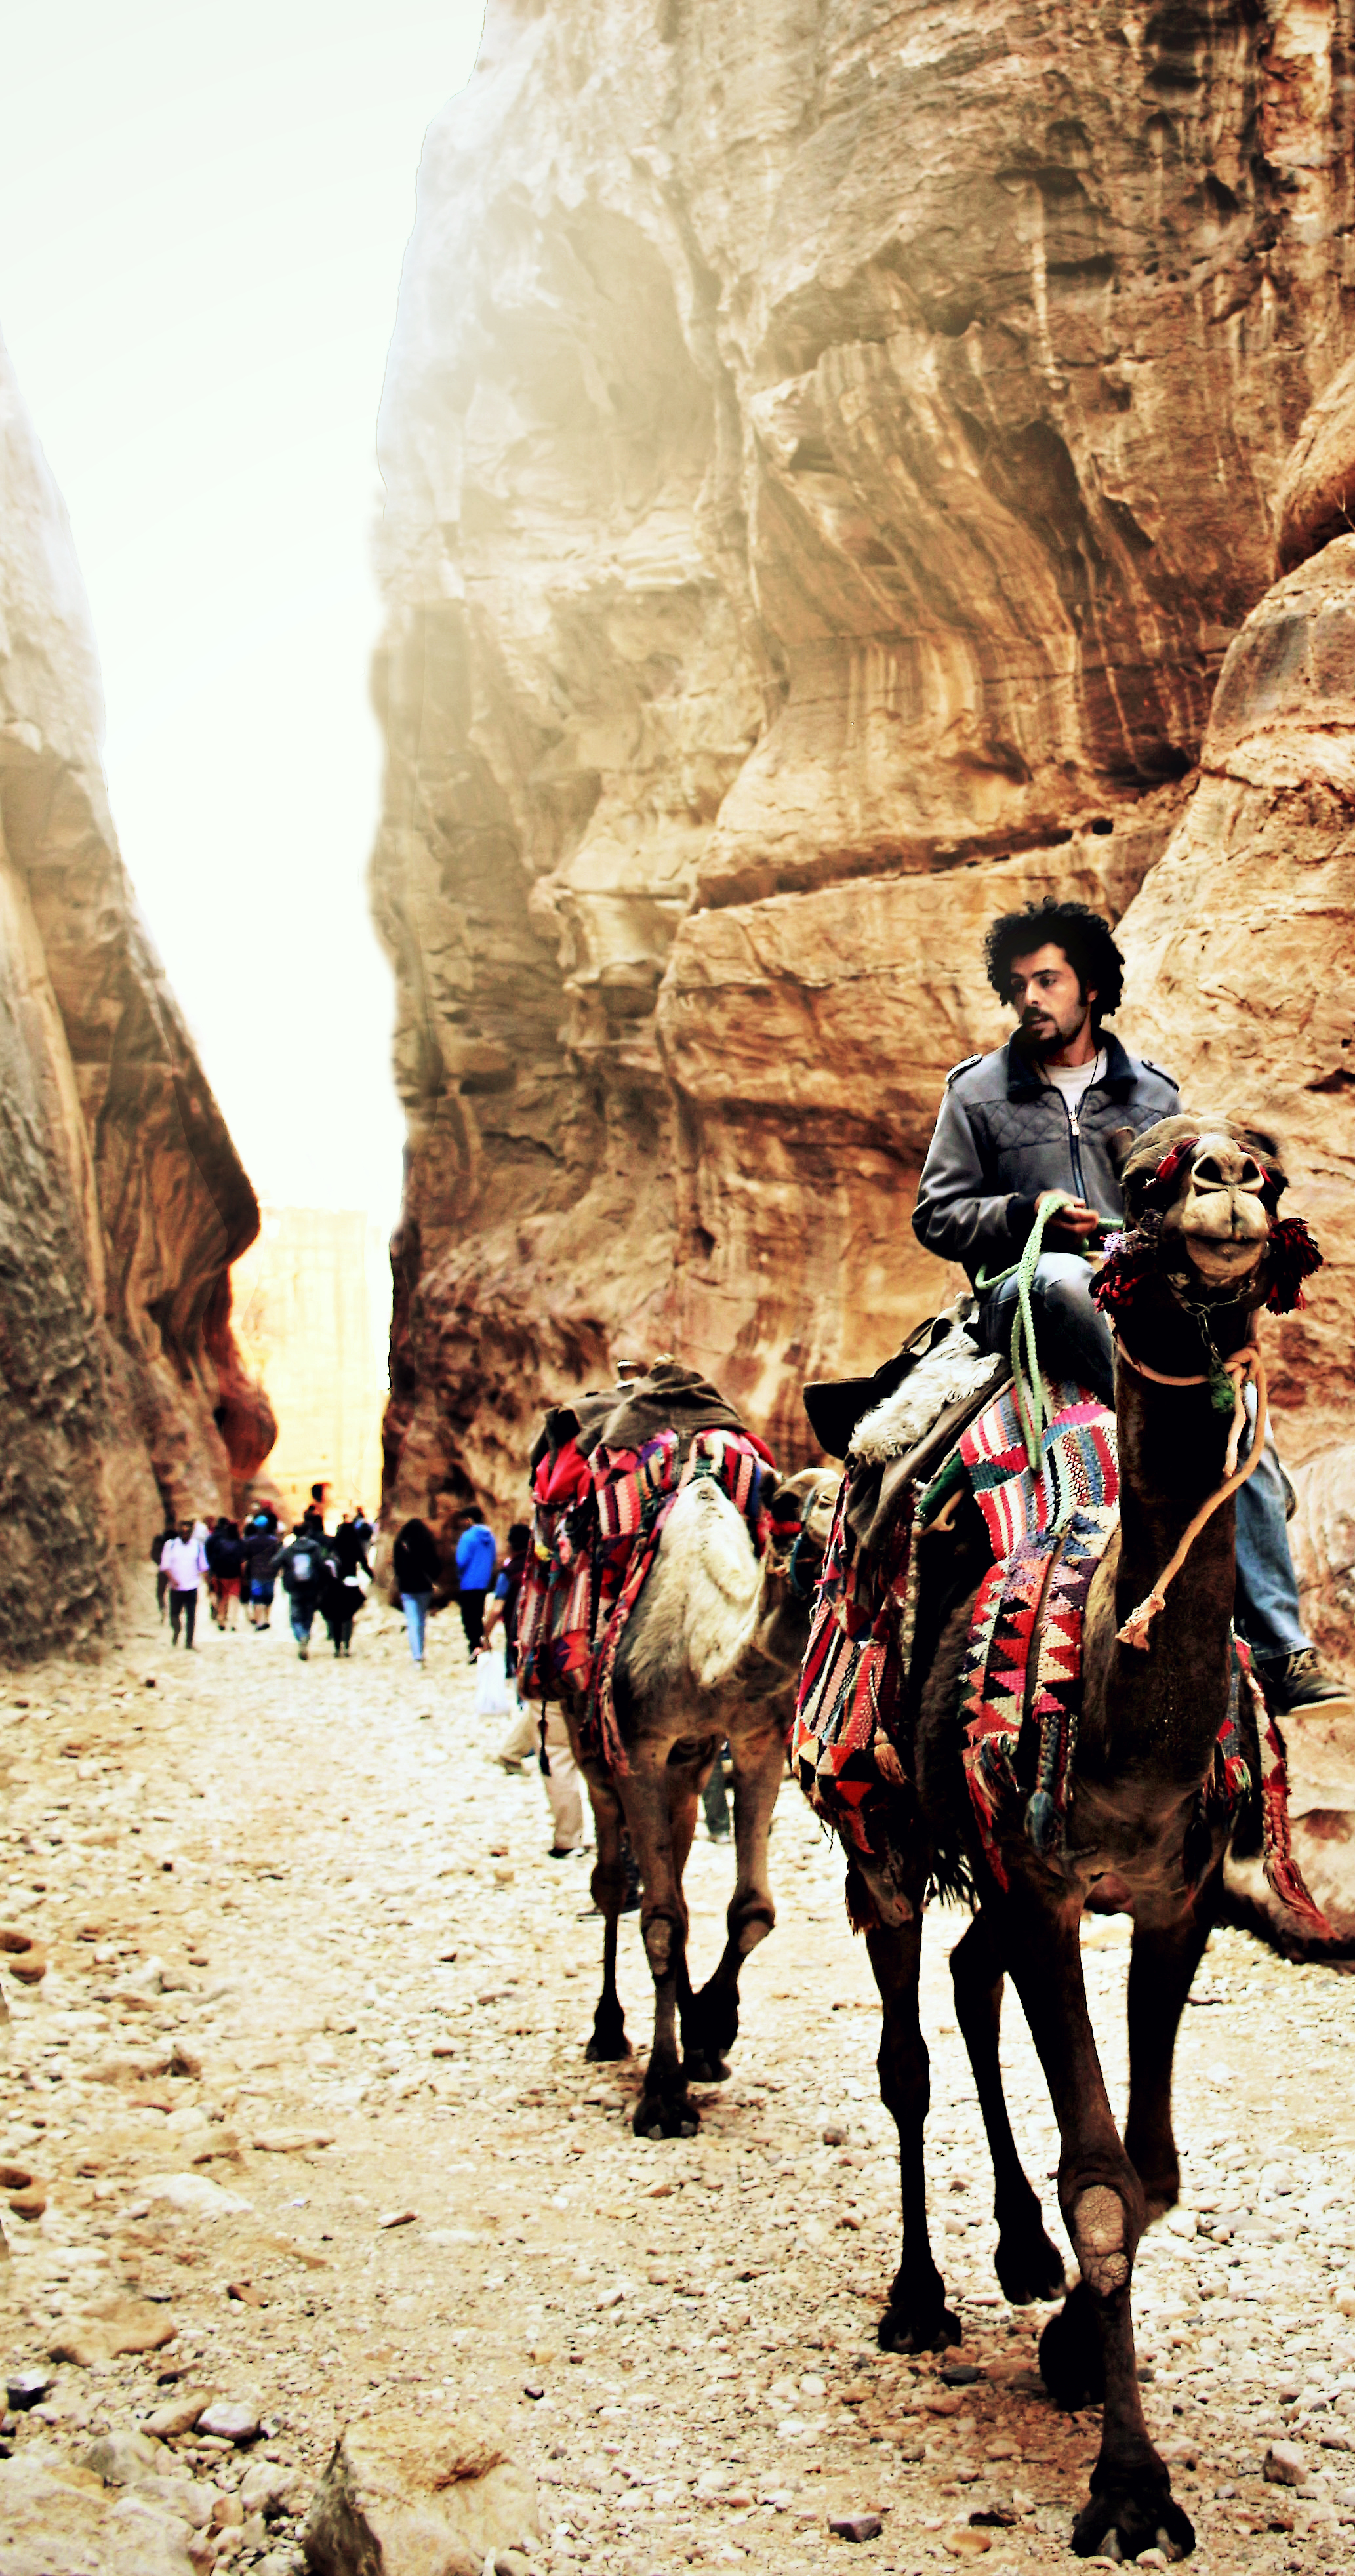 A Bedouin and his camels